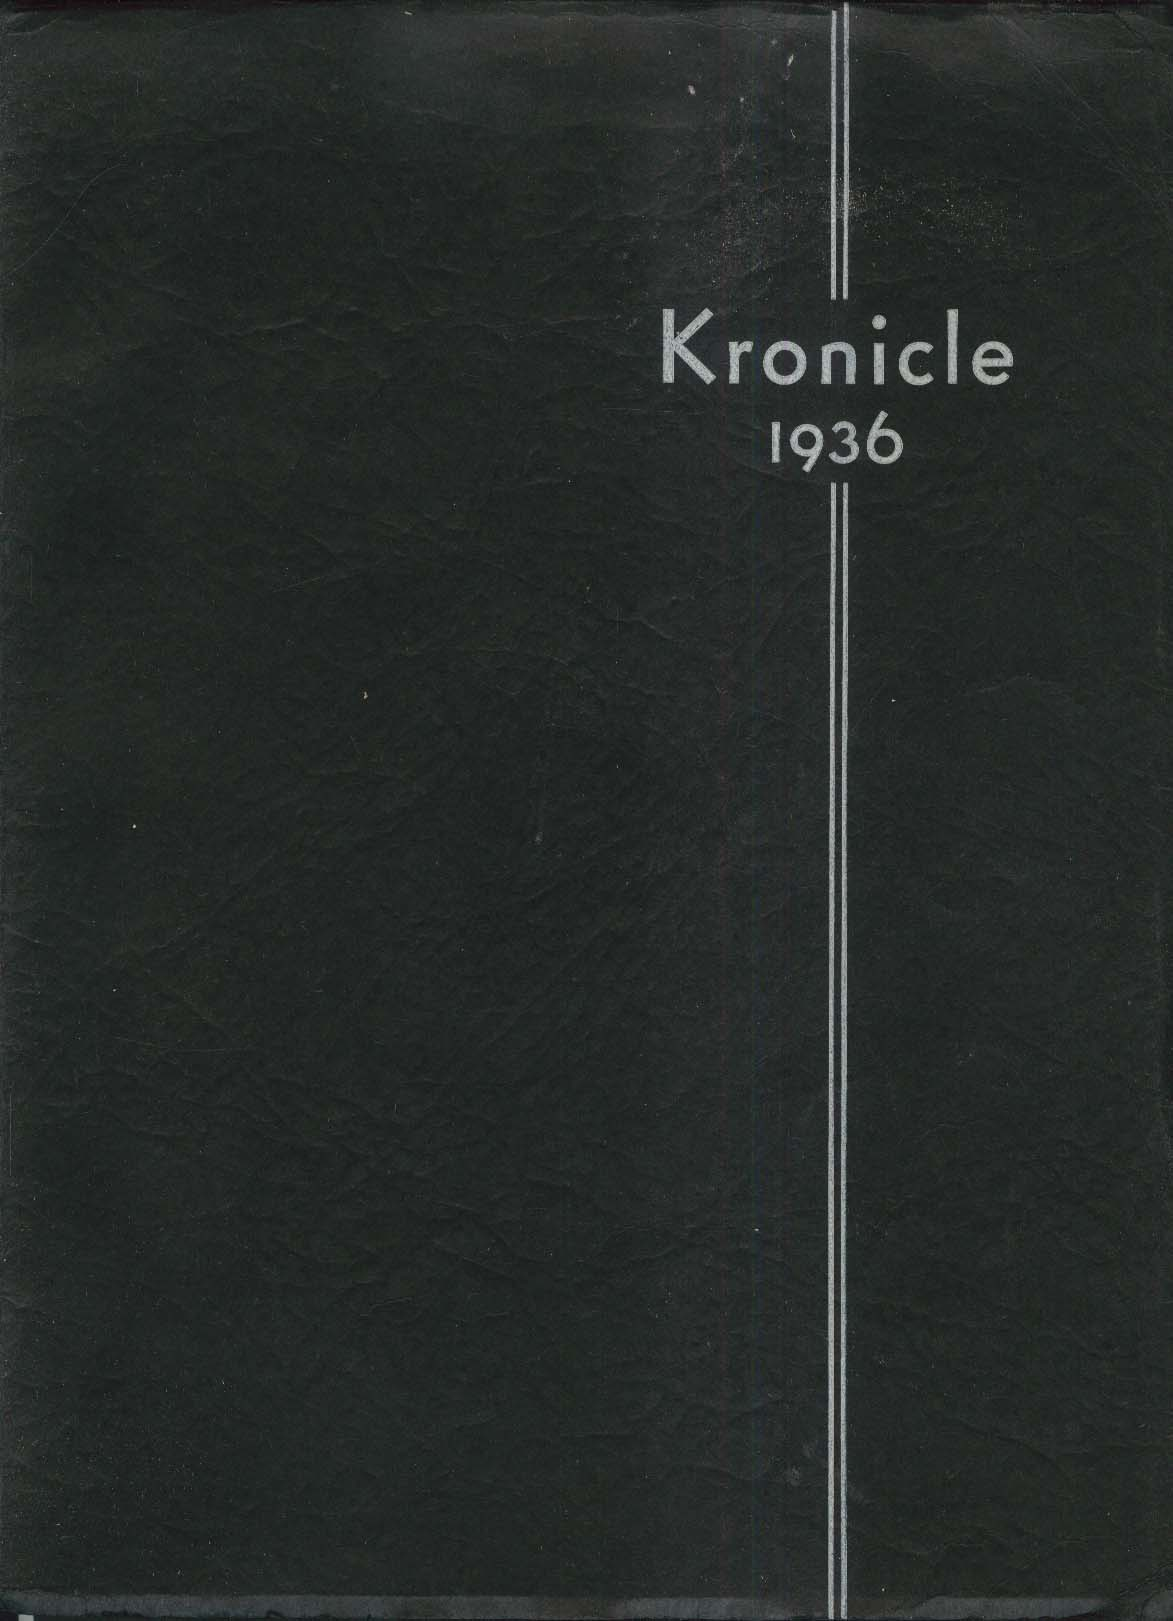 Kronicle 1936 Keene Normal School New Hampshire Yearbook